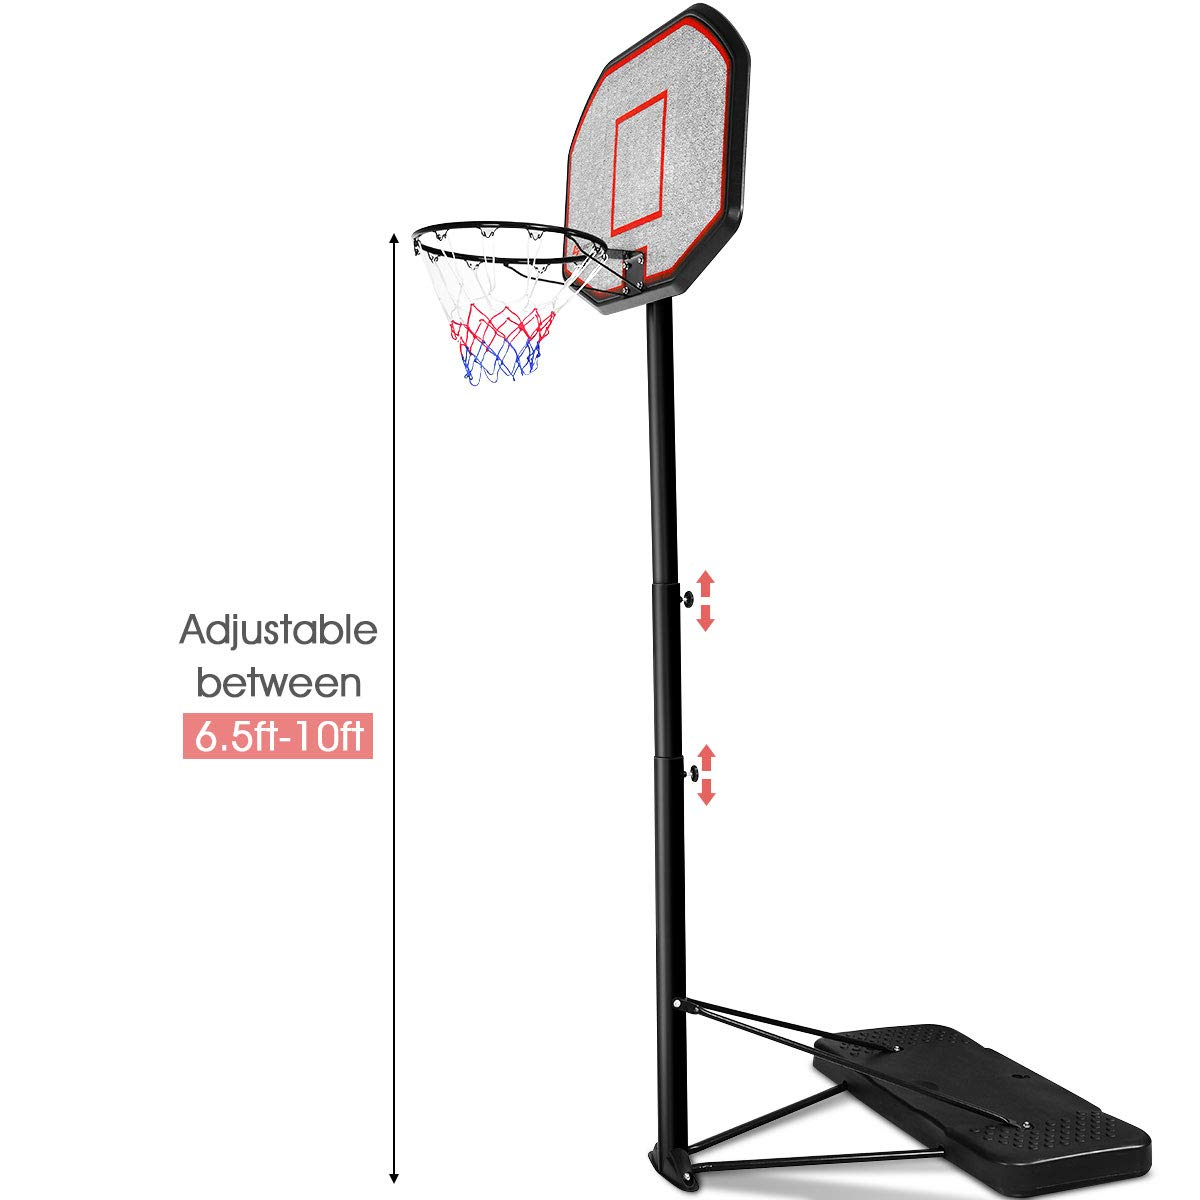 "GYMAX 6.5-10 ft Height Adjustable Basketball Hoop, 43"" Portable Basketball System with Wheeled Base, Indoor & Outdoor Shatterproof Basketball System Stands for Kids, Adults"